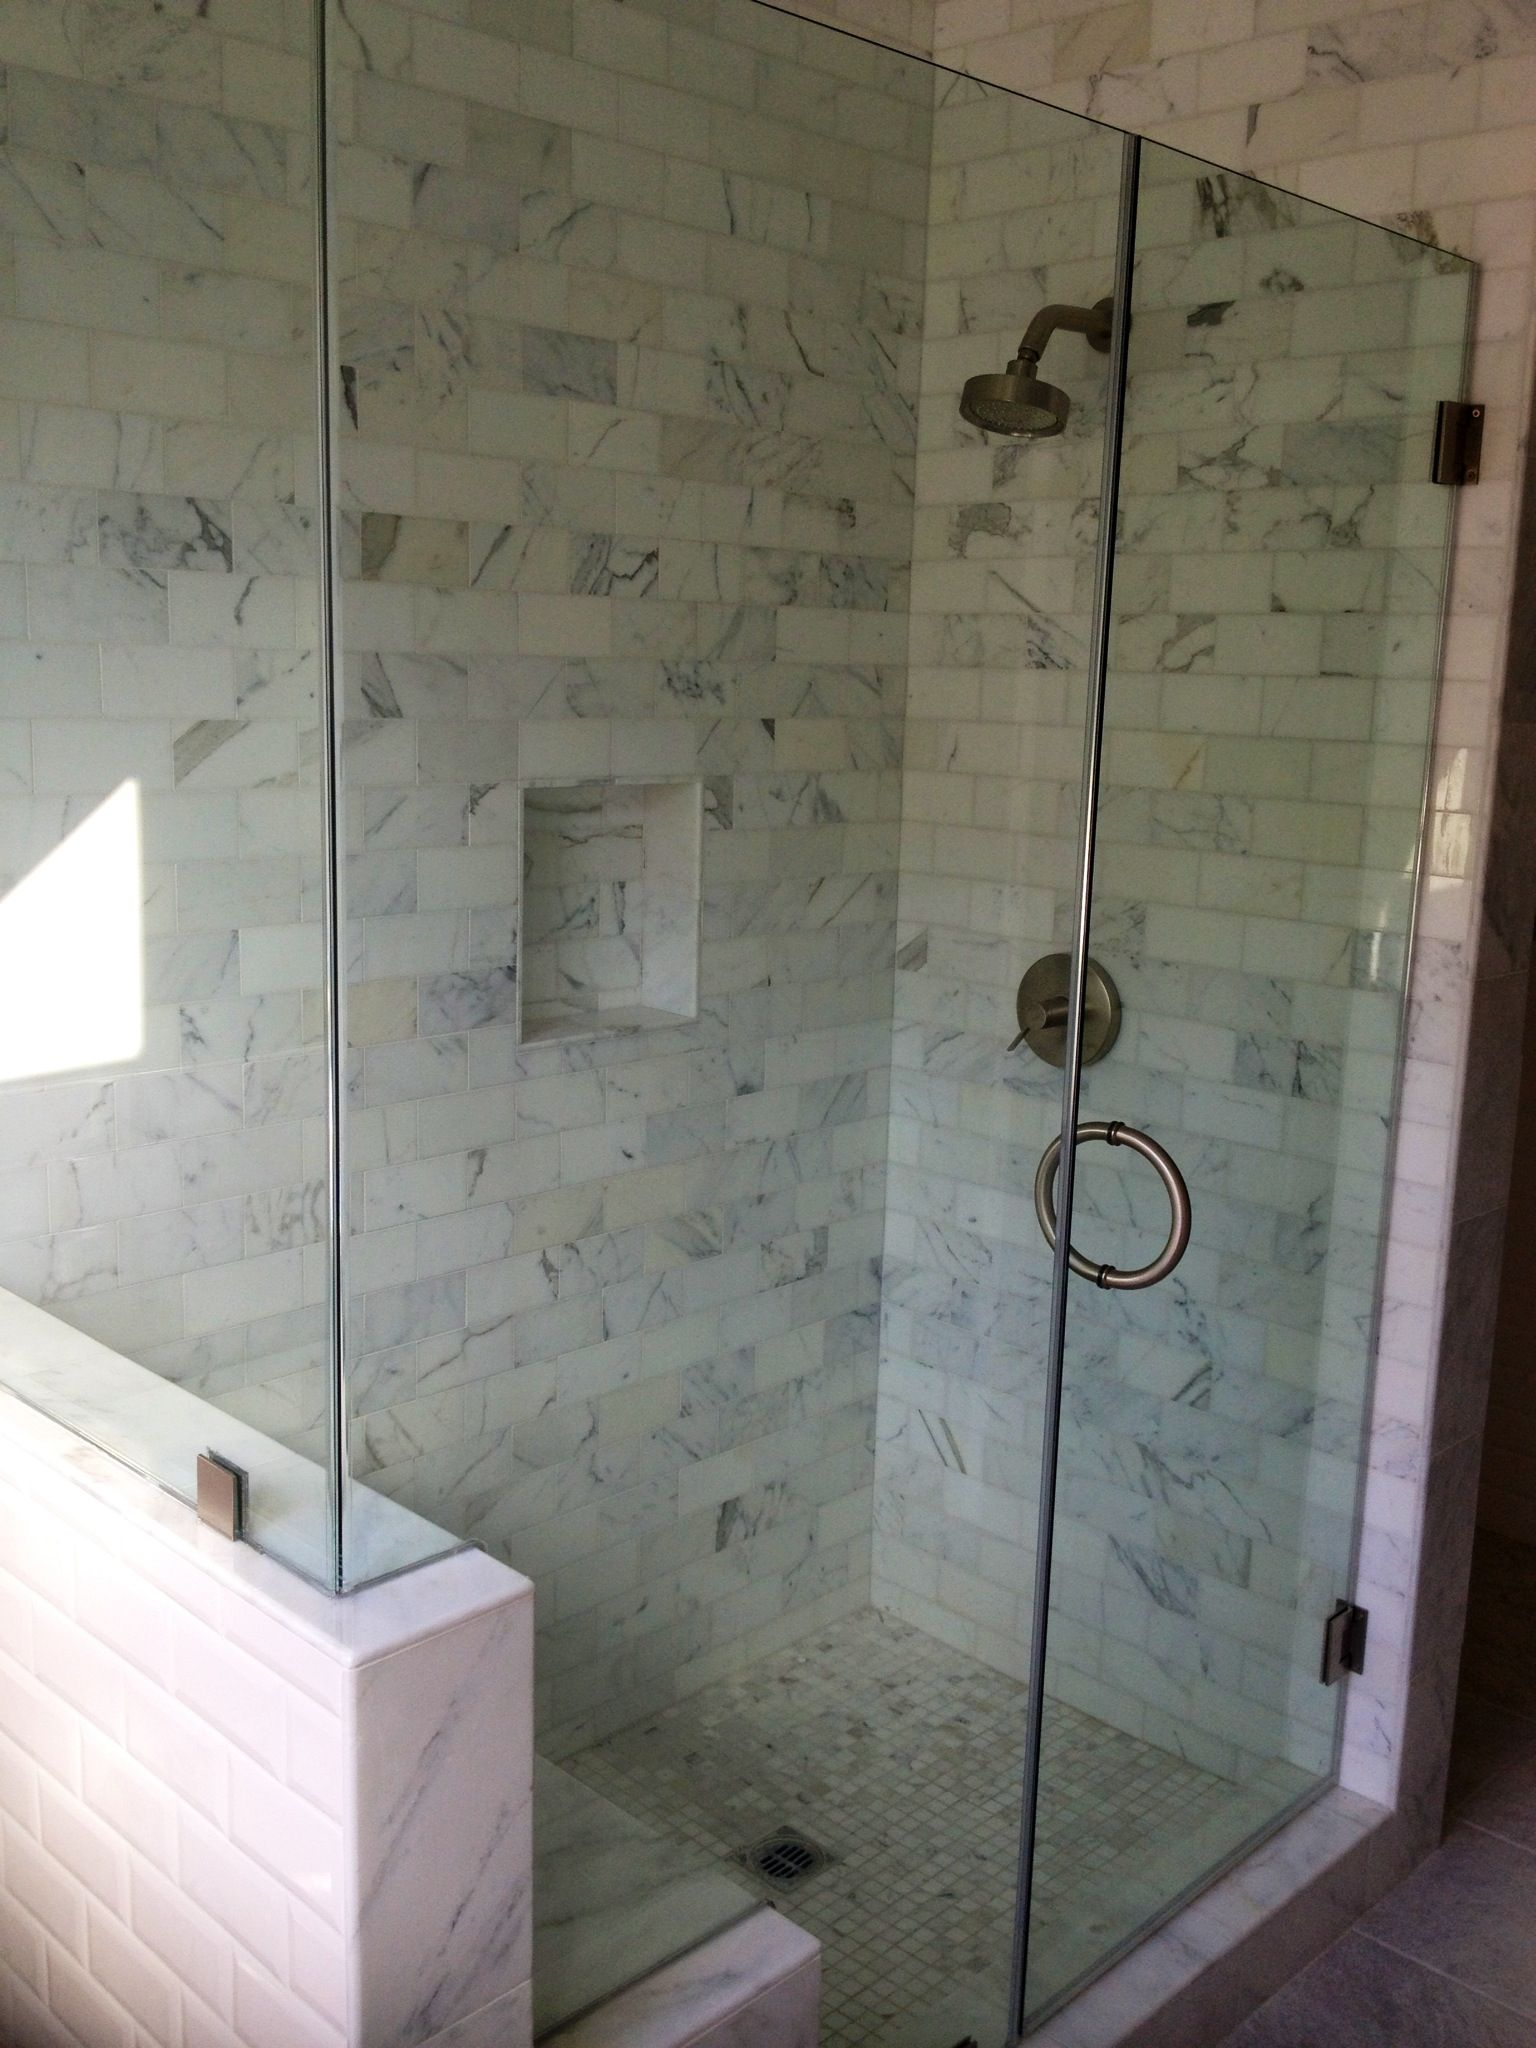 Frameless shower glass door with cut out for bench | Frameless Glass ...